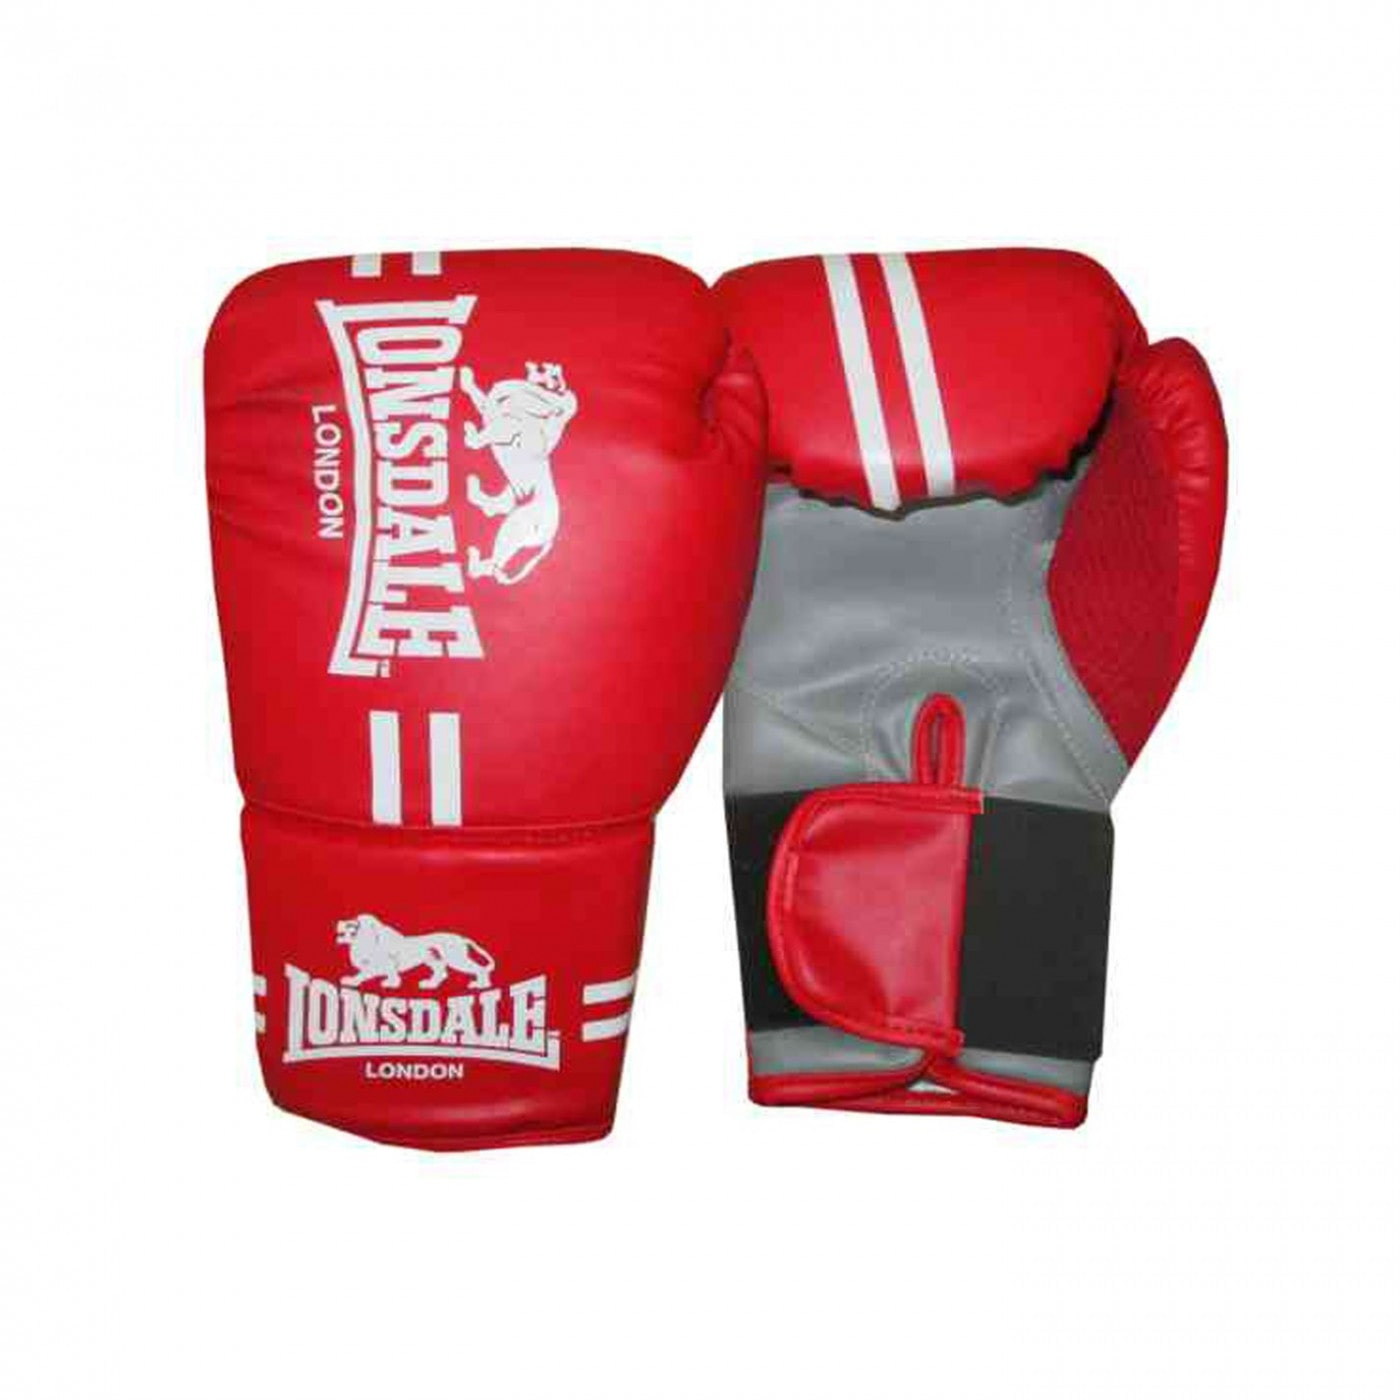 Lonsdale Contender Boxing Gloves